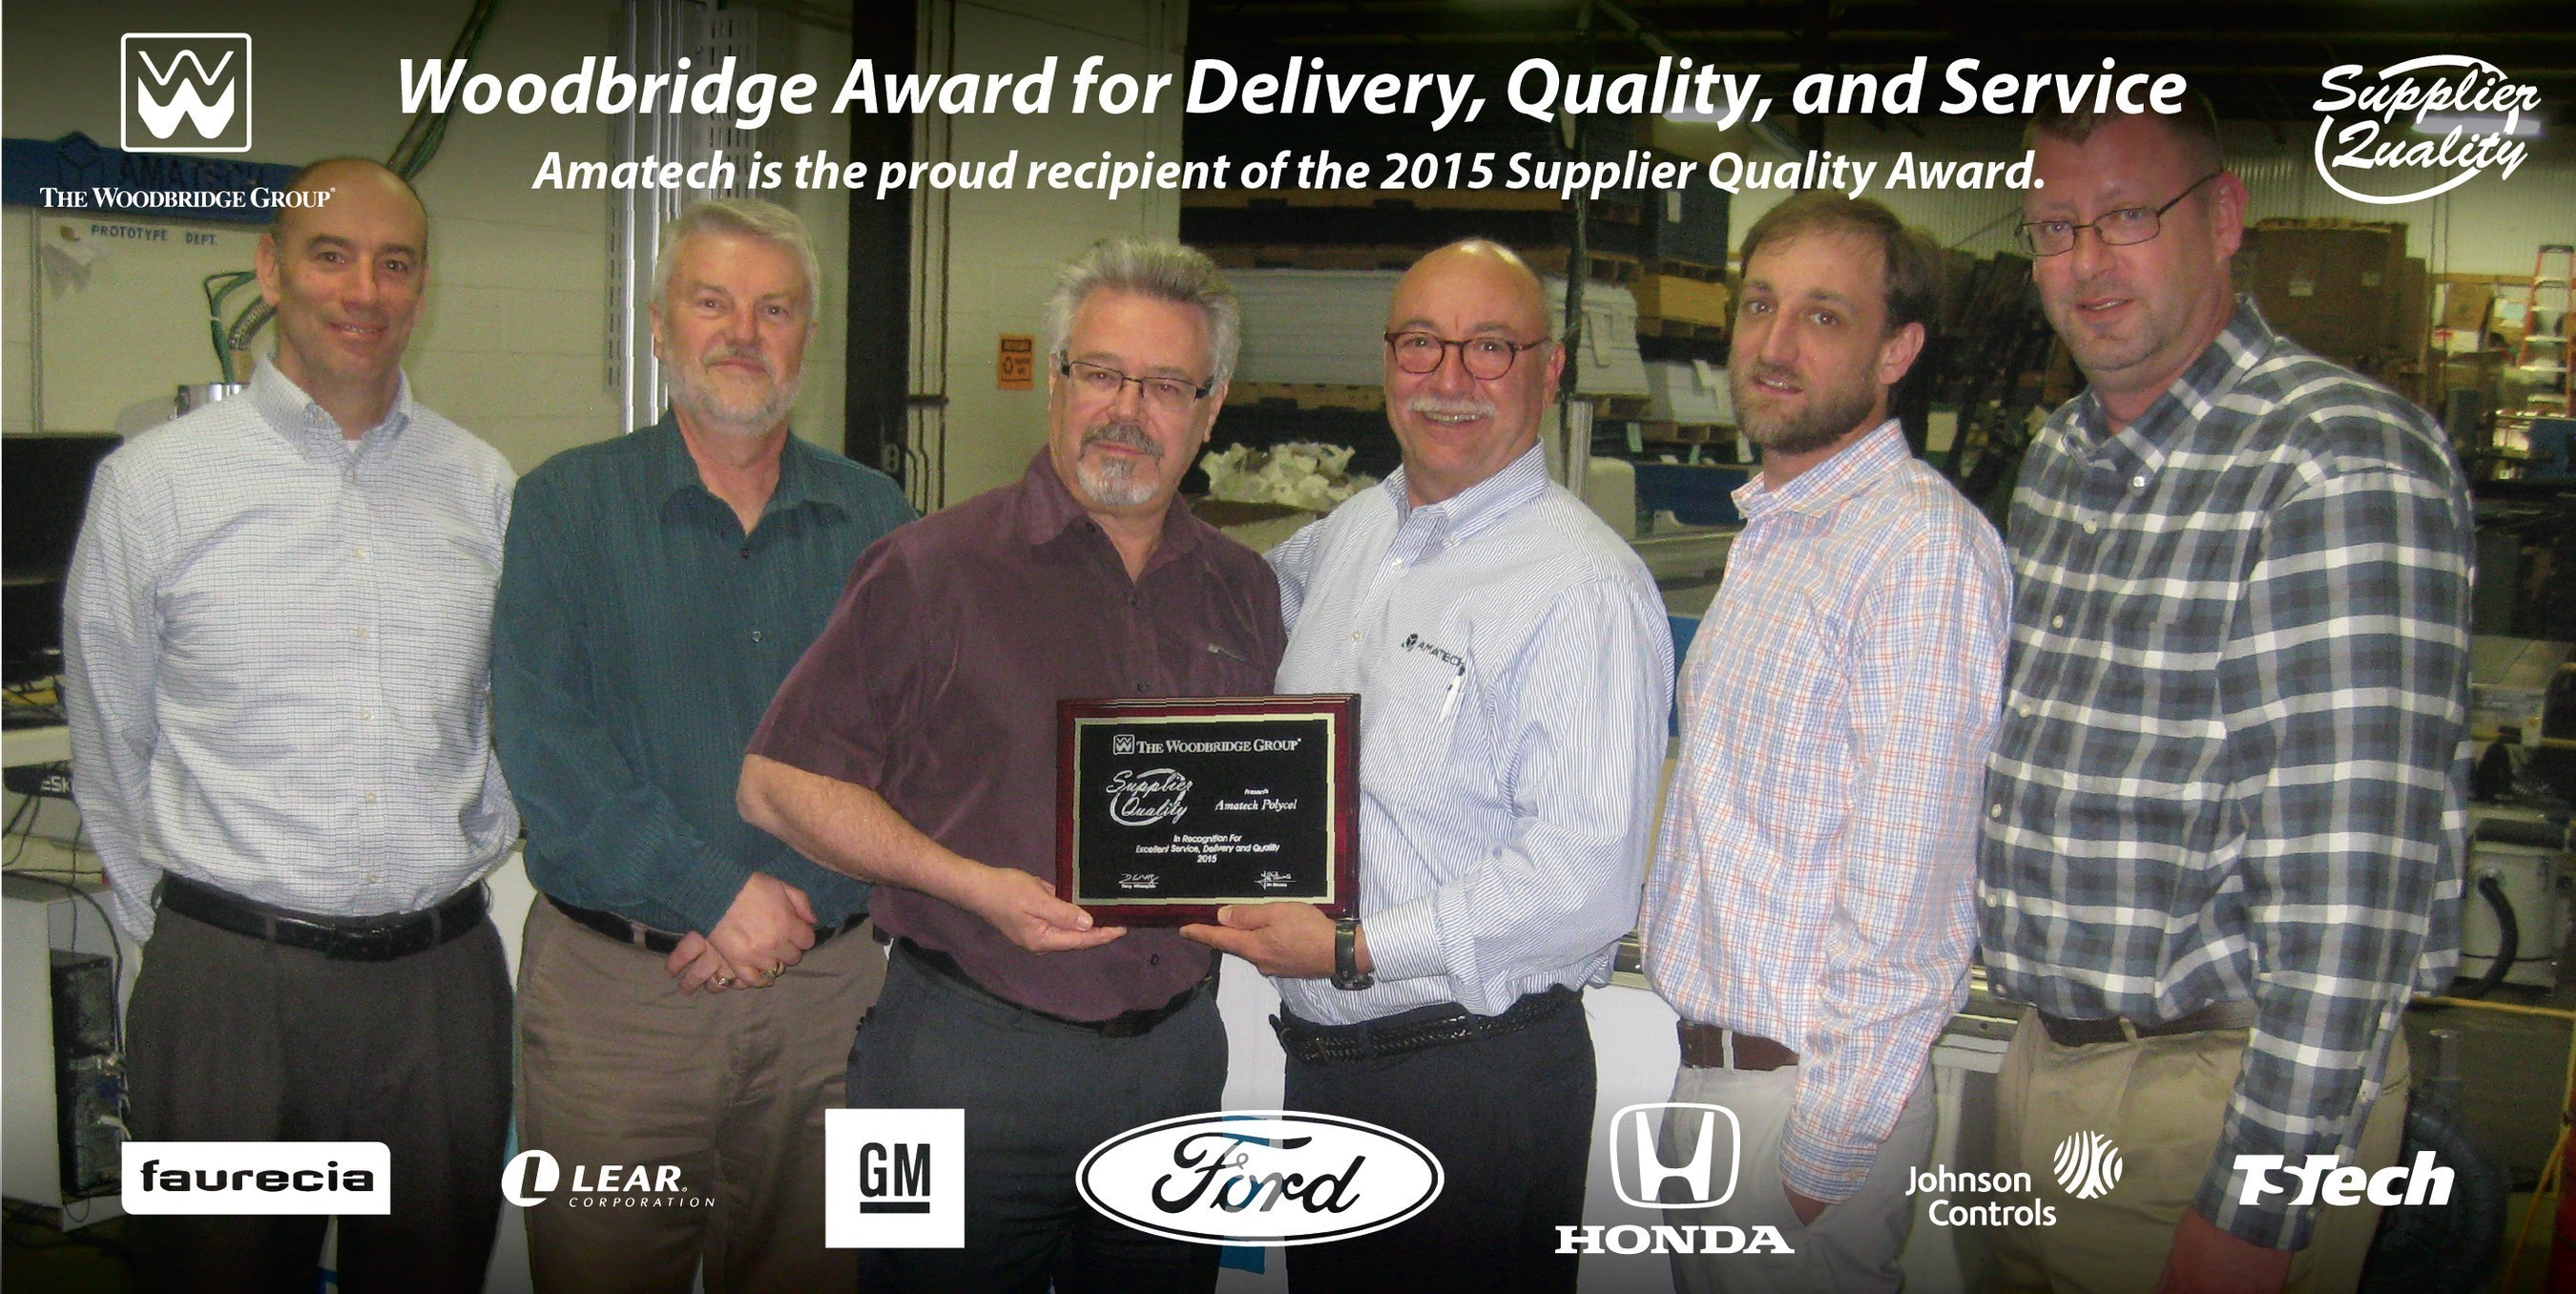 The Amatech team accepting their award for excellence in customer service from the Woodbridge Group. The Woodbridge Group is a leading supplier of foam for the automotive industry and has been working with Amatech, Inc. for well over a decade.